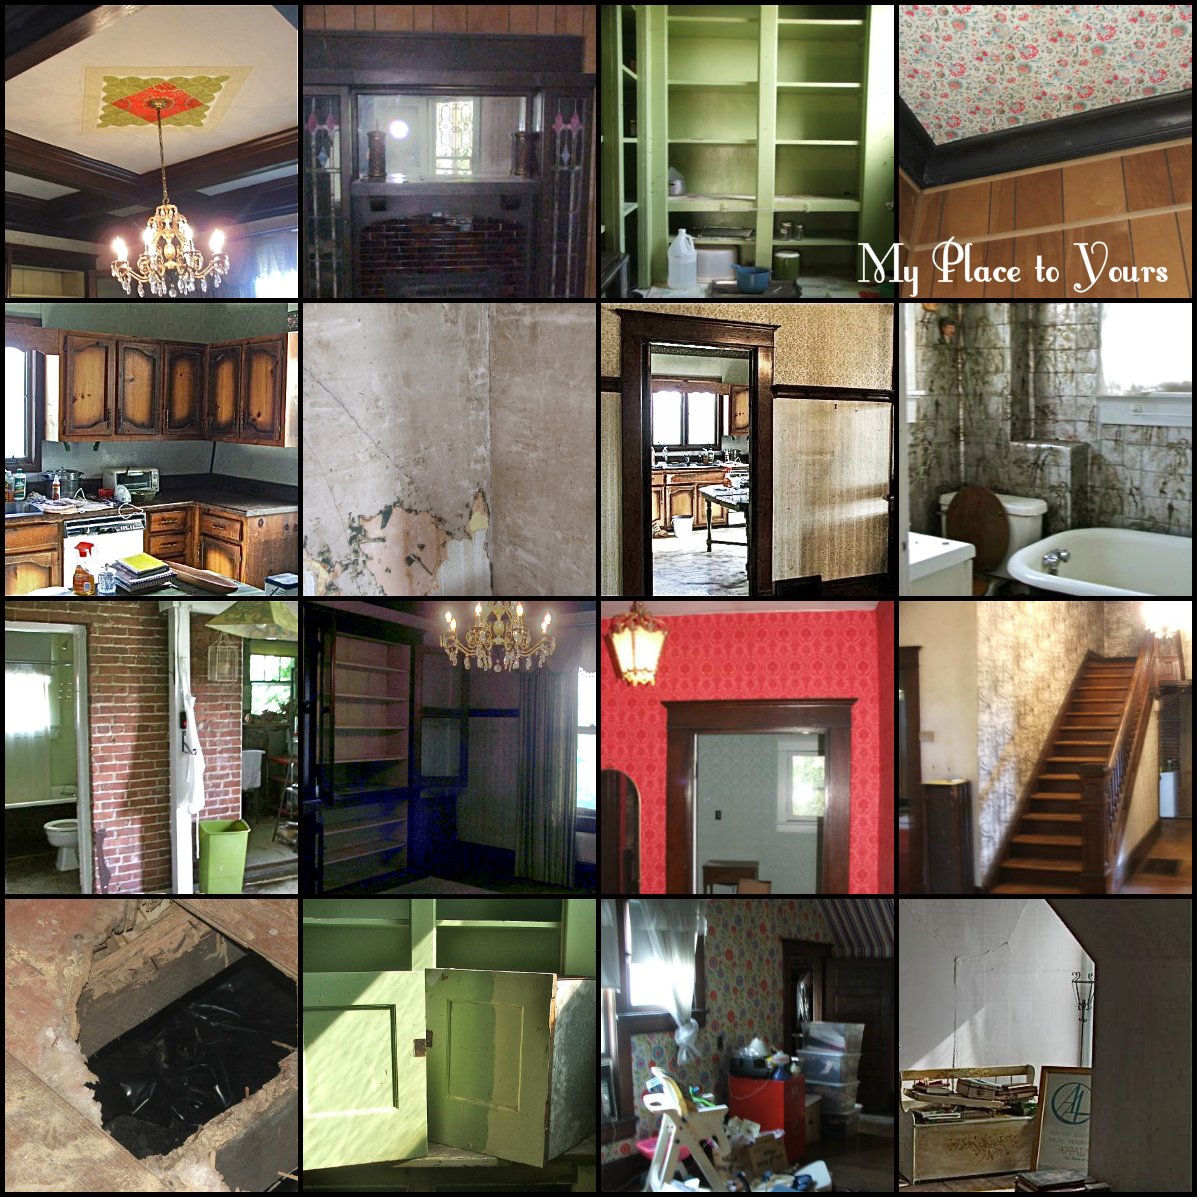 Beginning home renovation pictures.